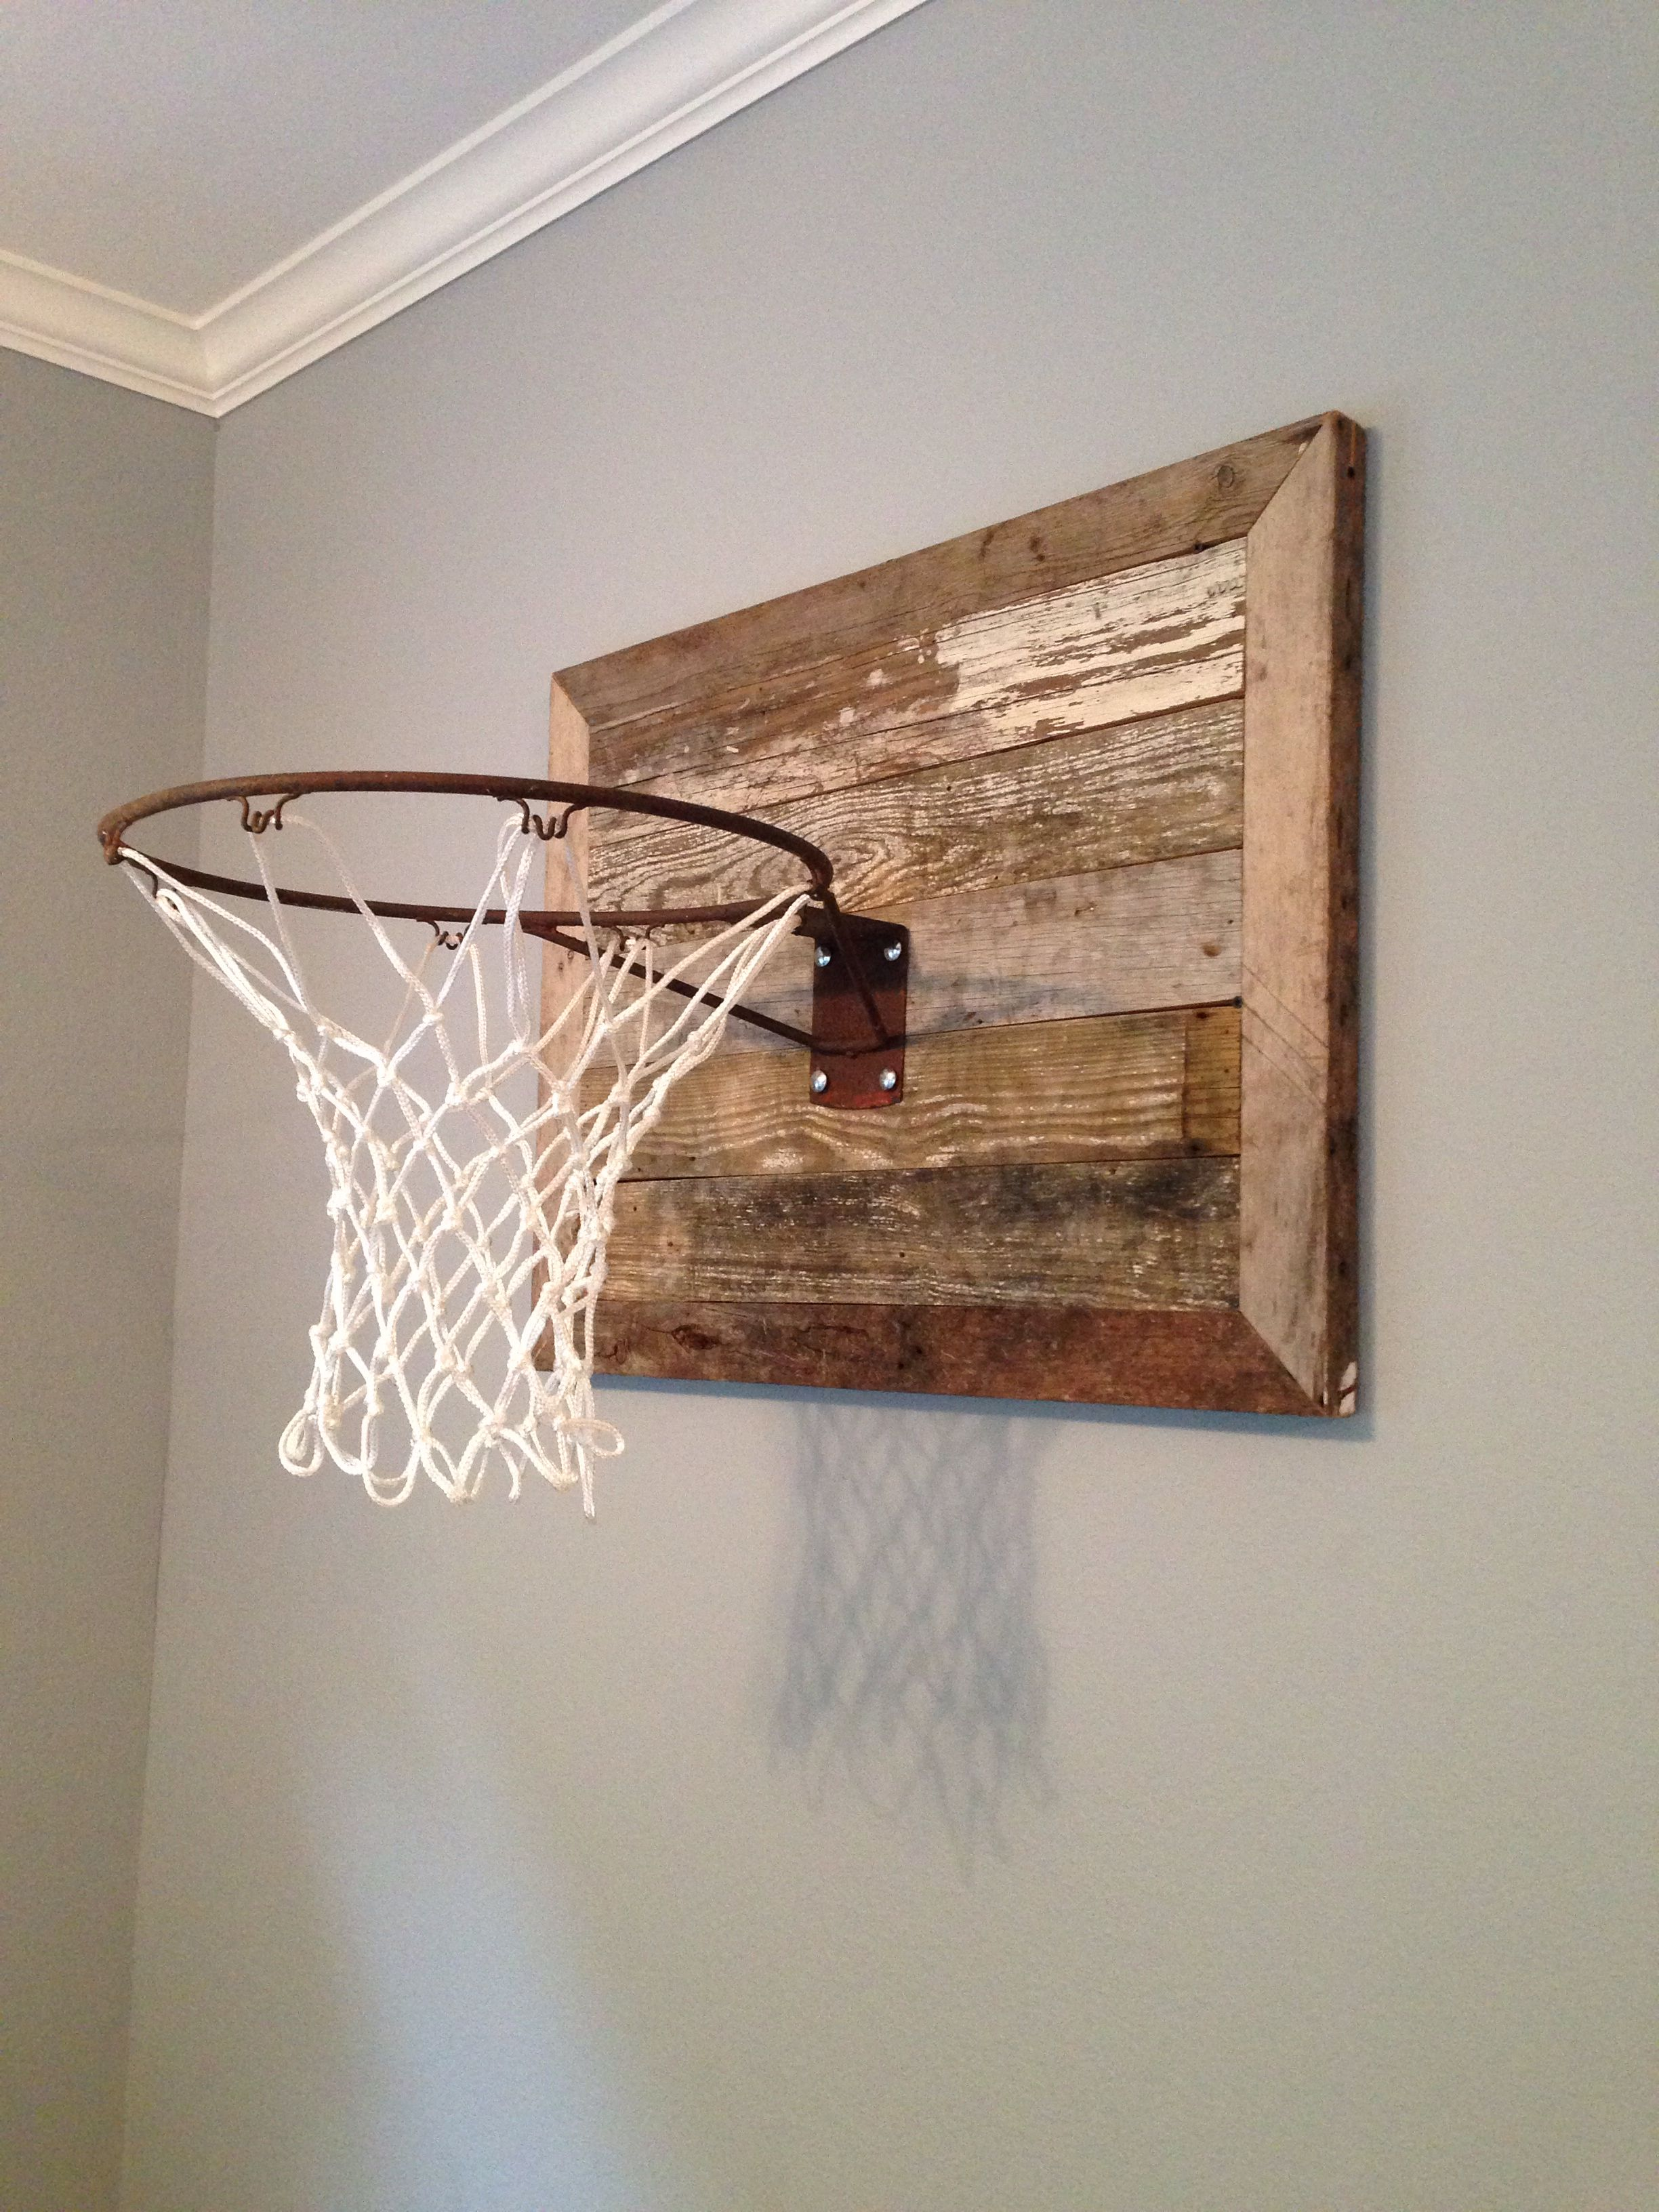 Basketball Goal For Clients Playroom Www Themagnoliamom Paint Color Walls Sherwin Williams Online